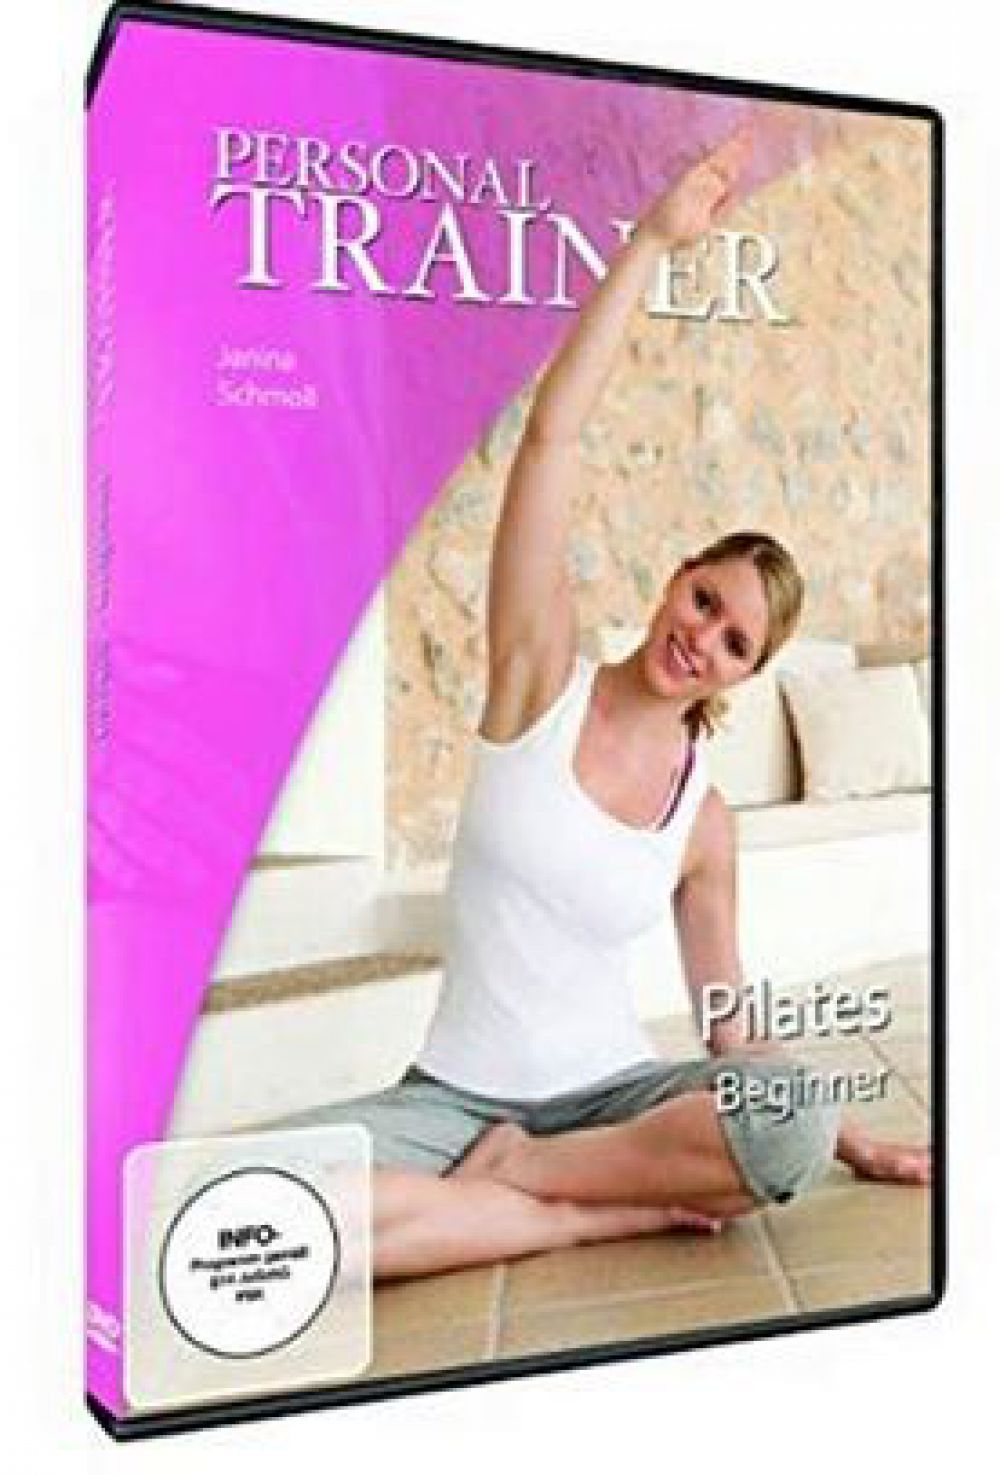 Personal Trainer - Pilates Beginners